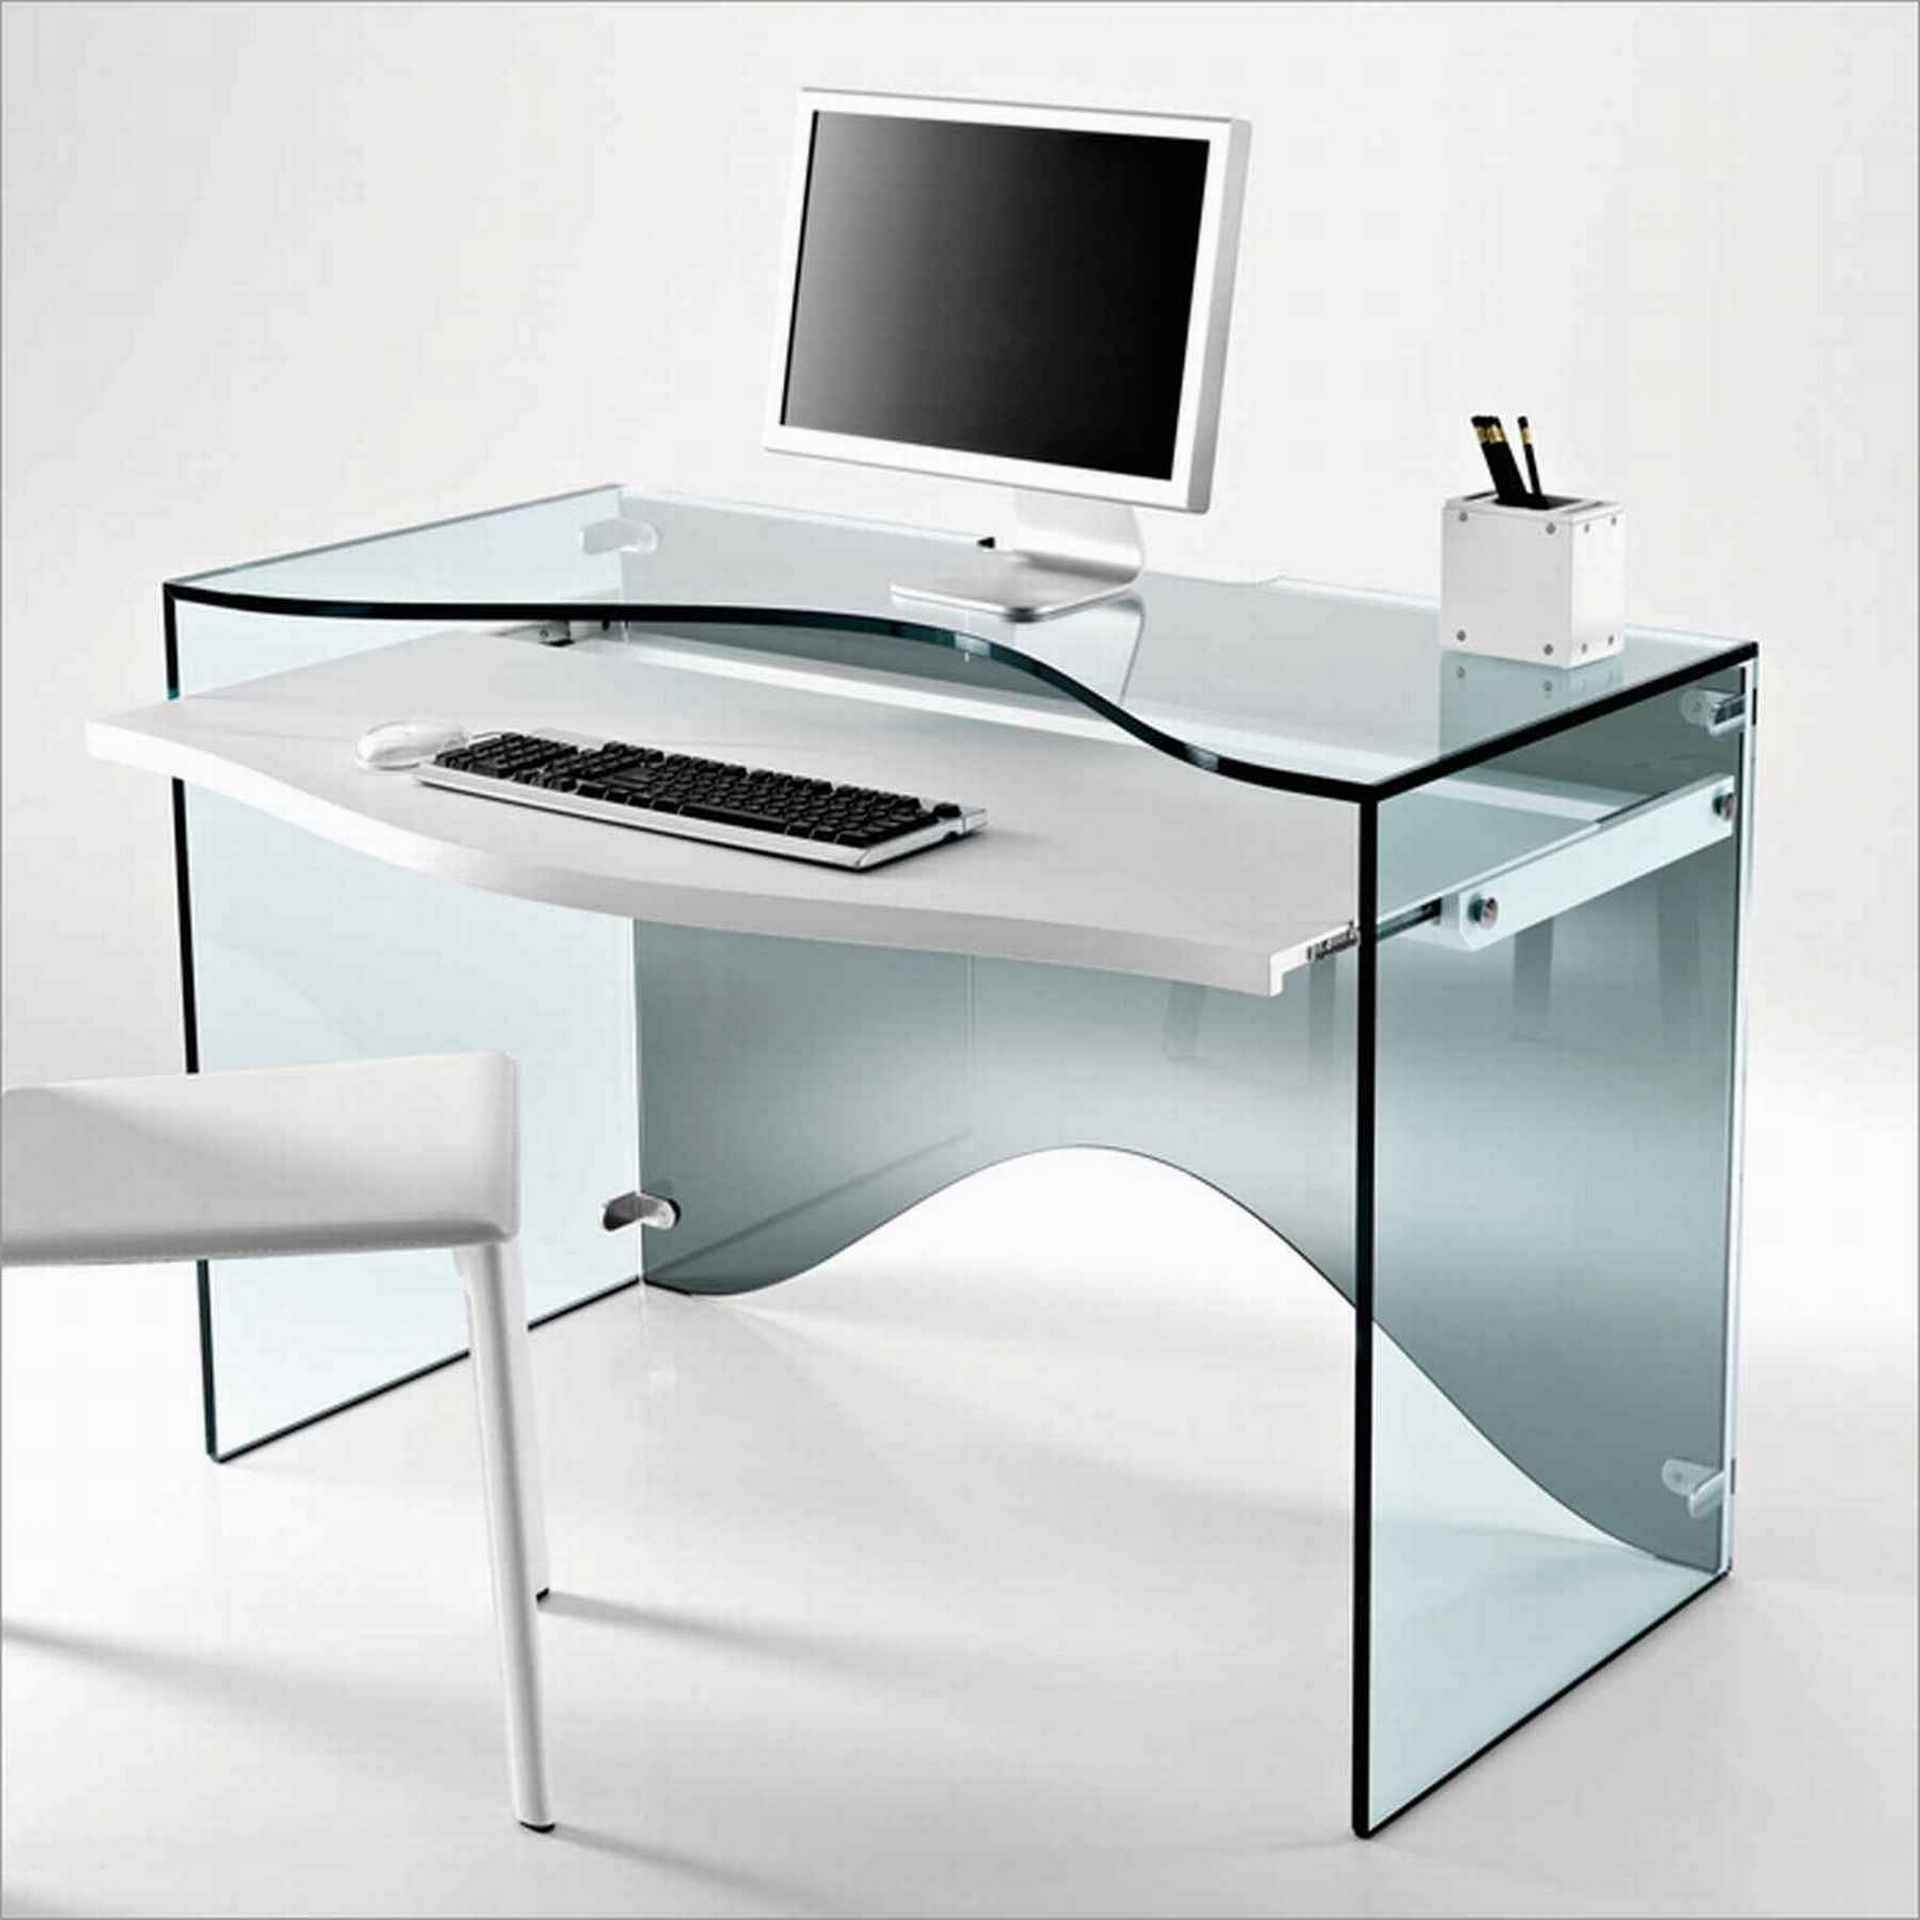 Funiture: Modern Computer Desks Ideas With Transparent Glass Regarding Trendy Glass Computer Desks (View 6 of 20)